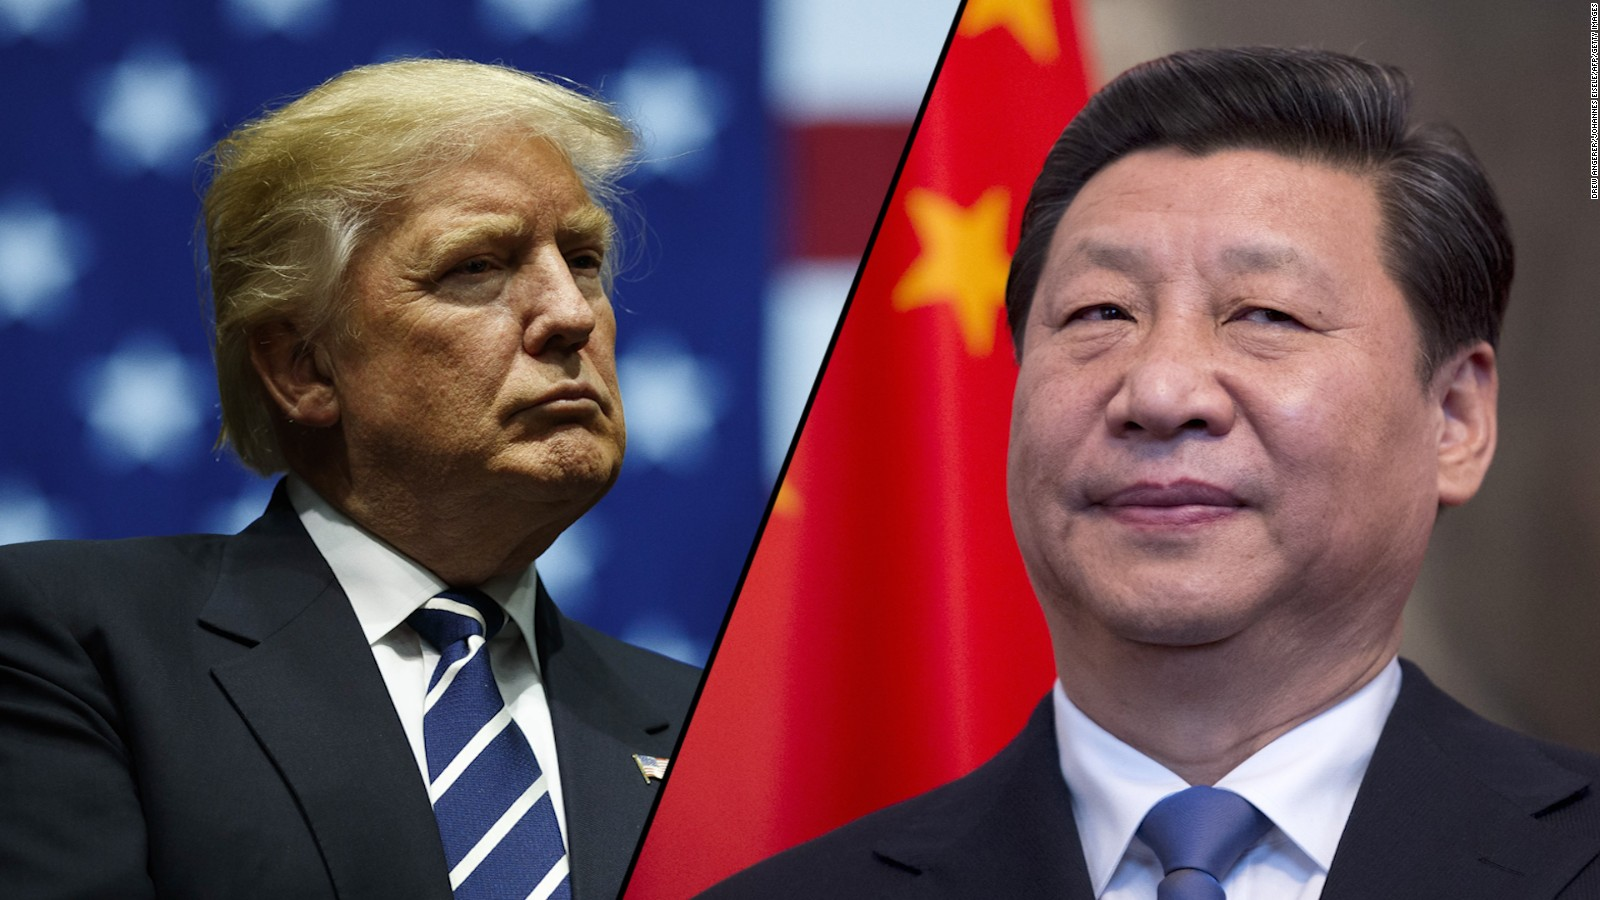 Image result for Xi jinping mad